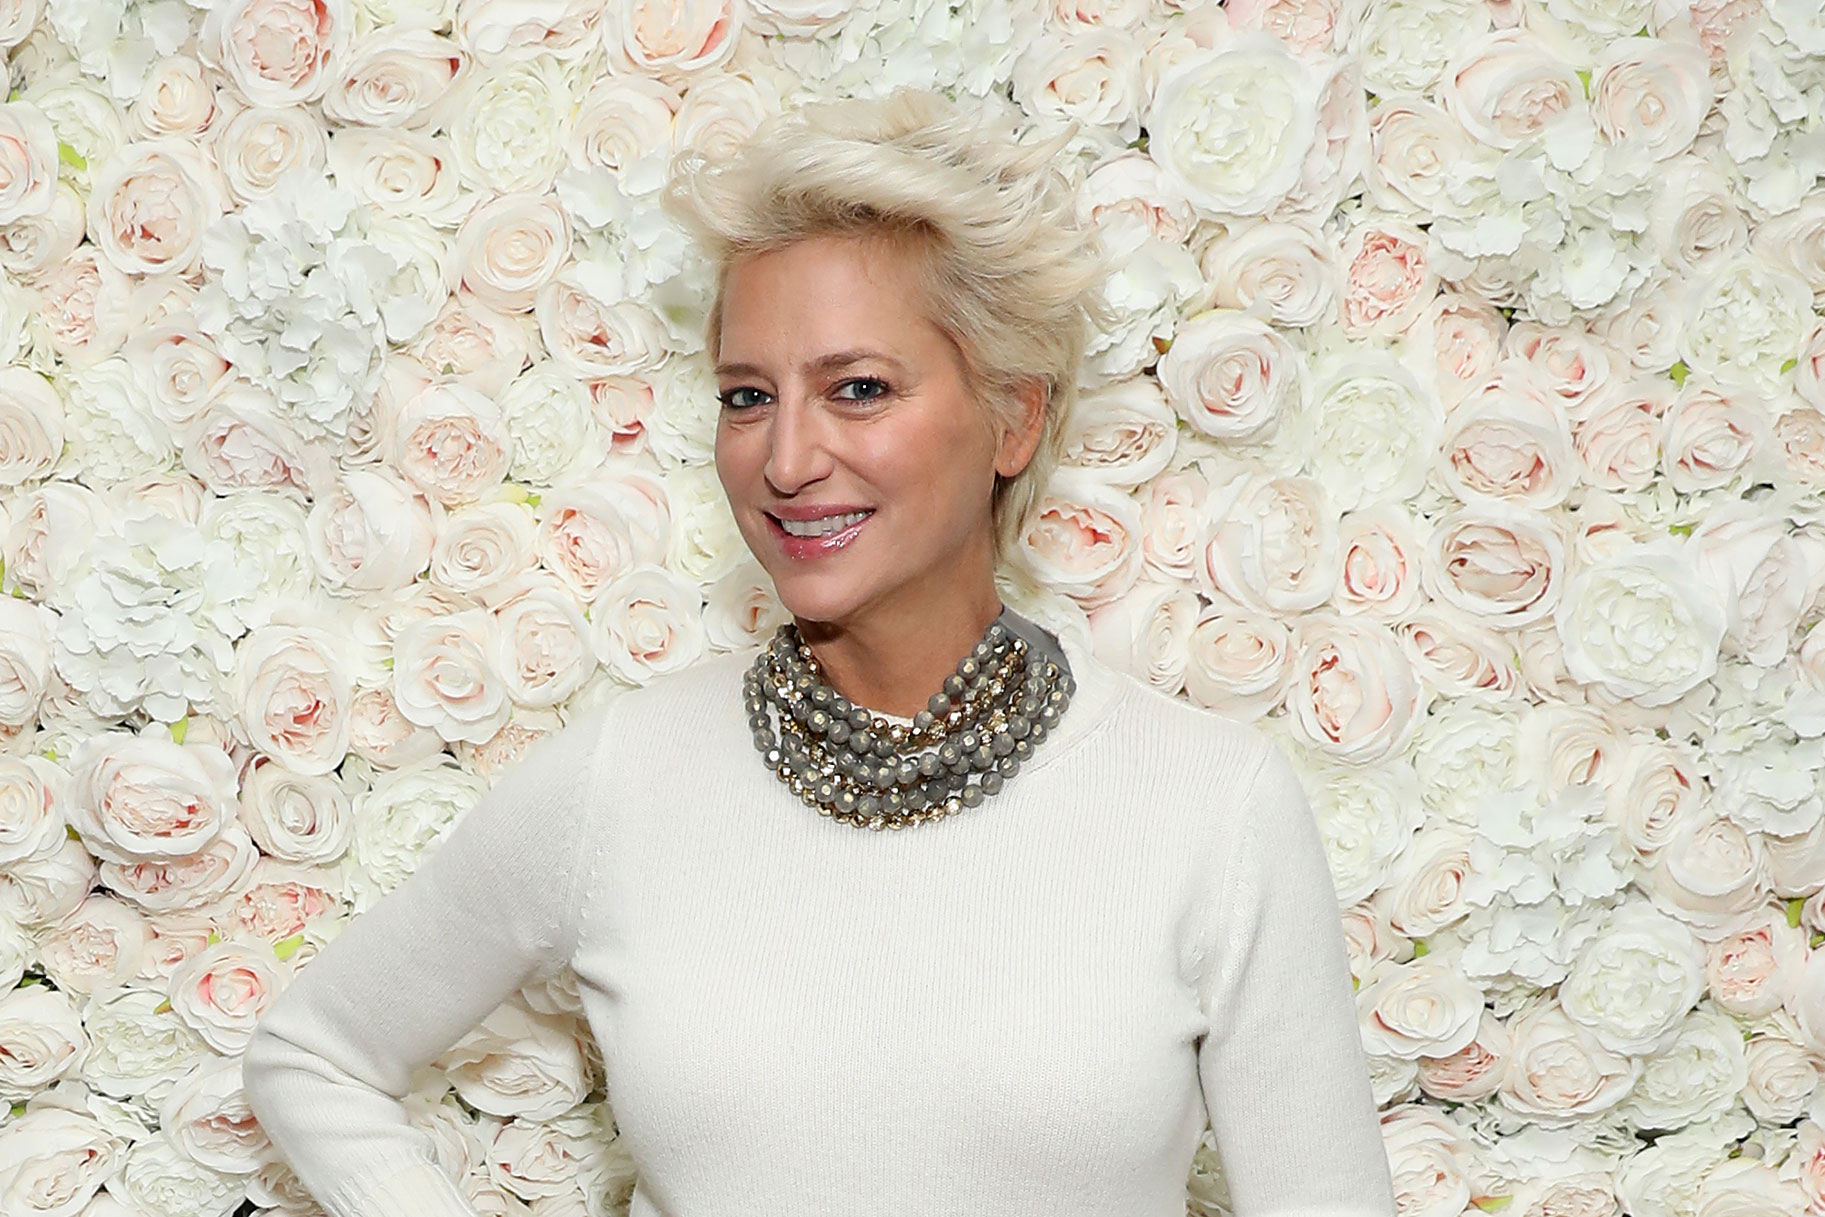 Dorinda Medley on How to Stay Active During Self Isolation ...